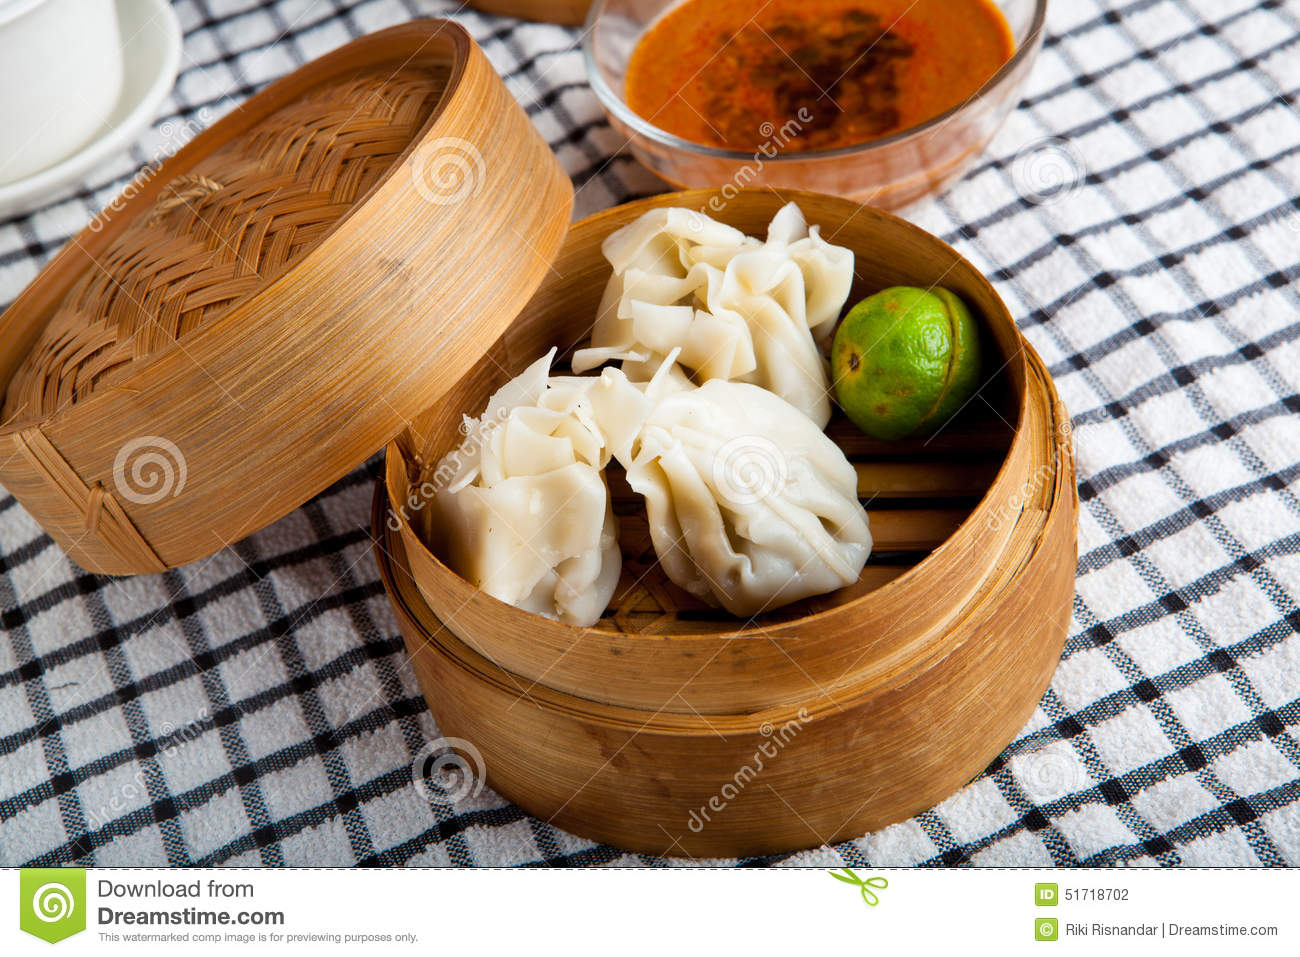 Indonesian Food Siomay Bandung Stock Photo - Image: 51718702